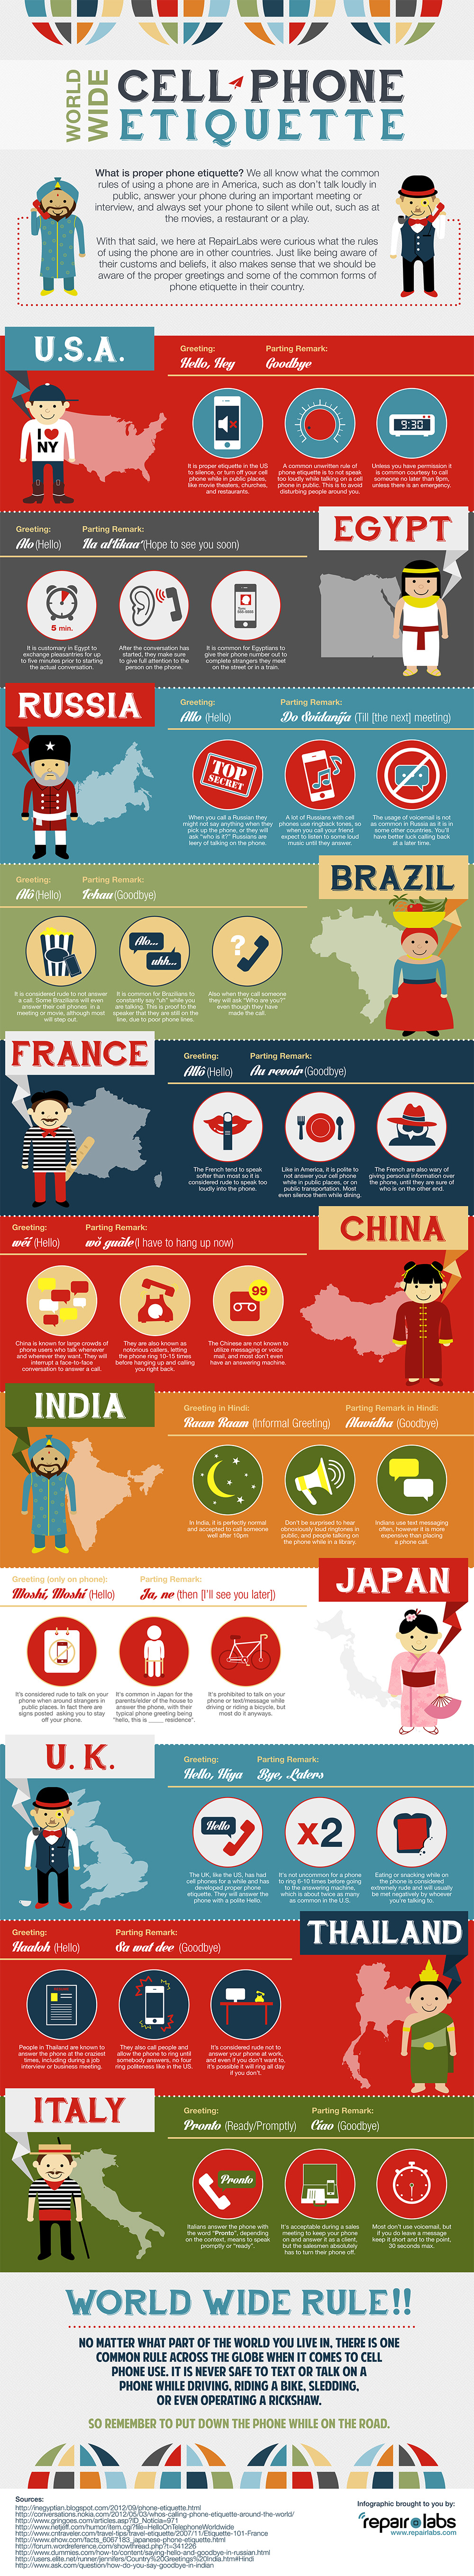 World wide phone etiquette infographic best infographics